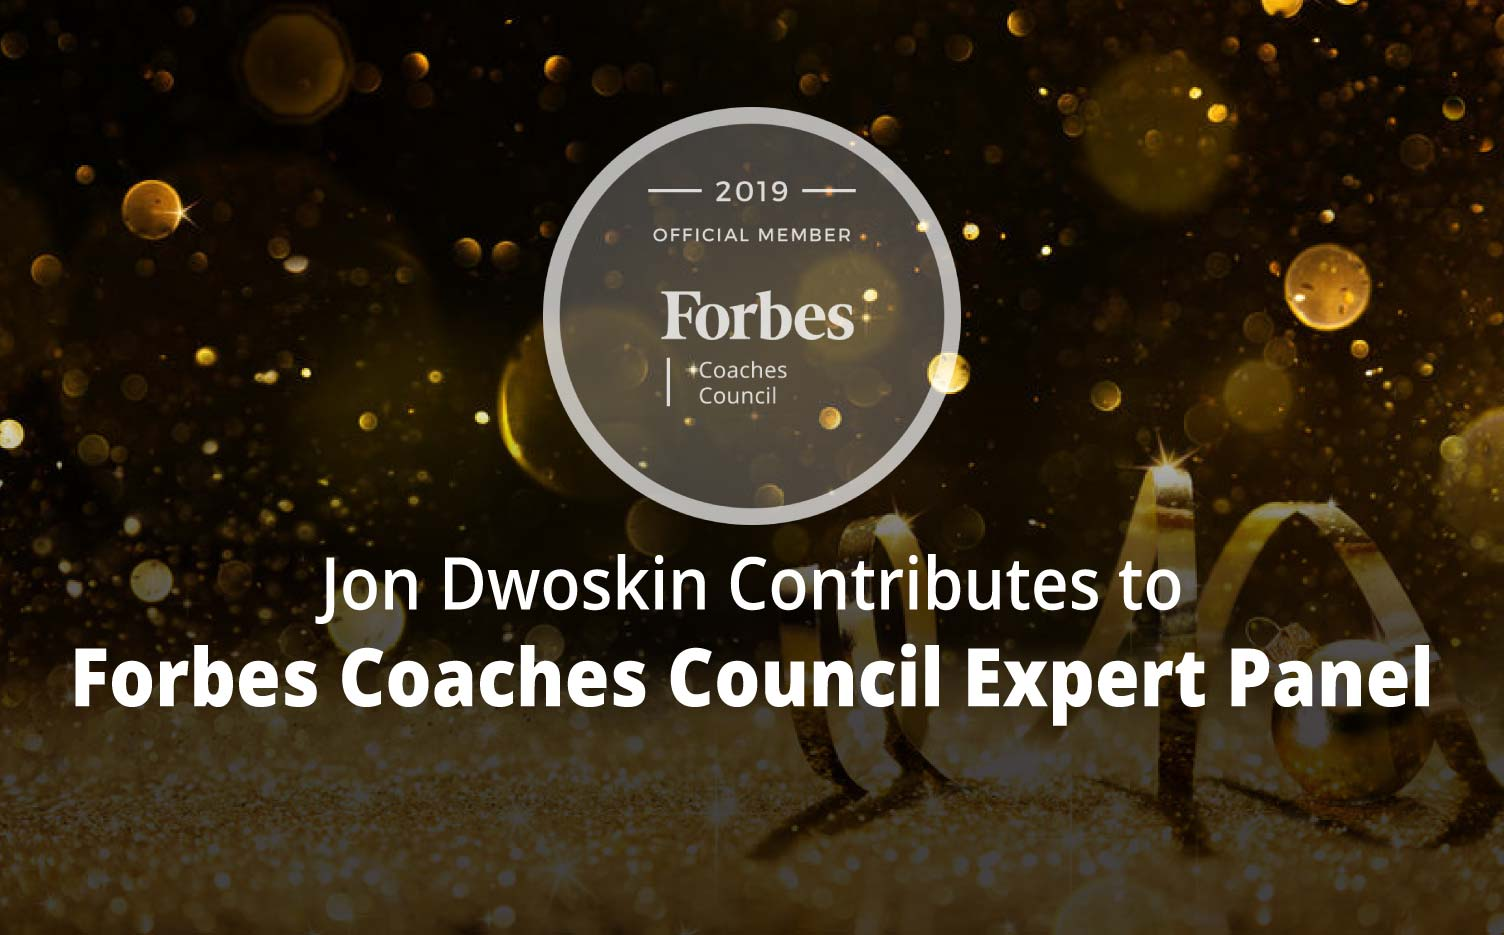 Jon Contributes to Forbes Coaches Council Expert Panel: Embracing The New Year: 11 Strategies To Turn Openness For Change Into Action